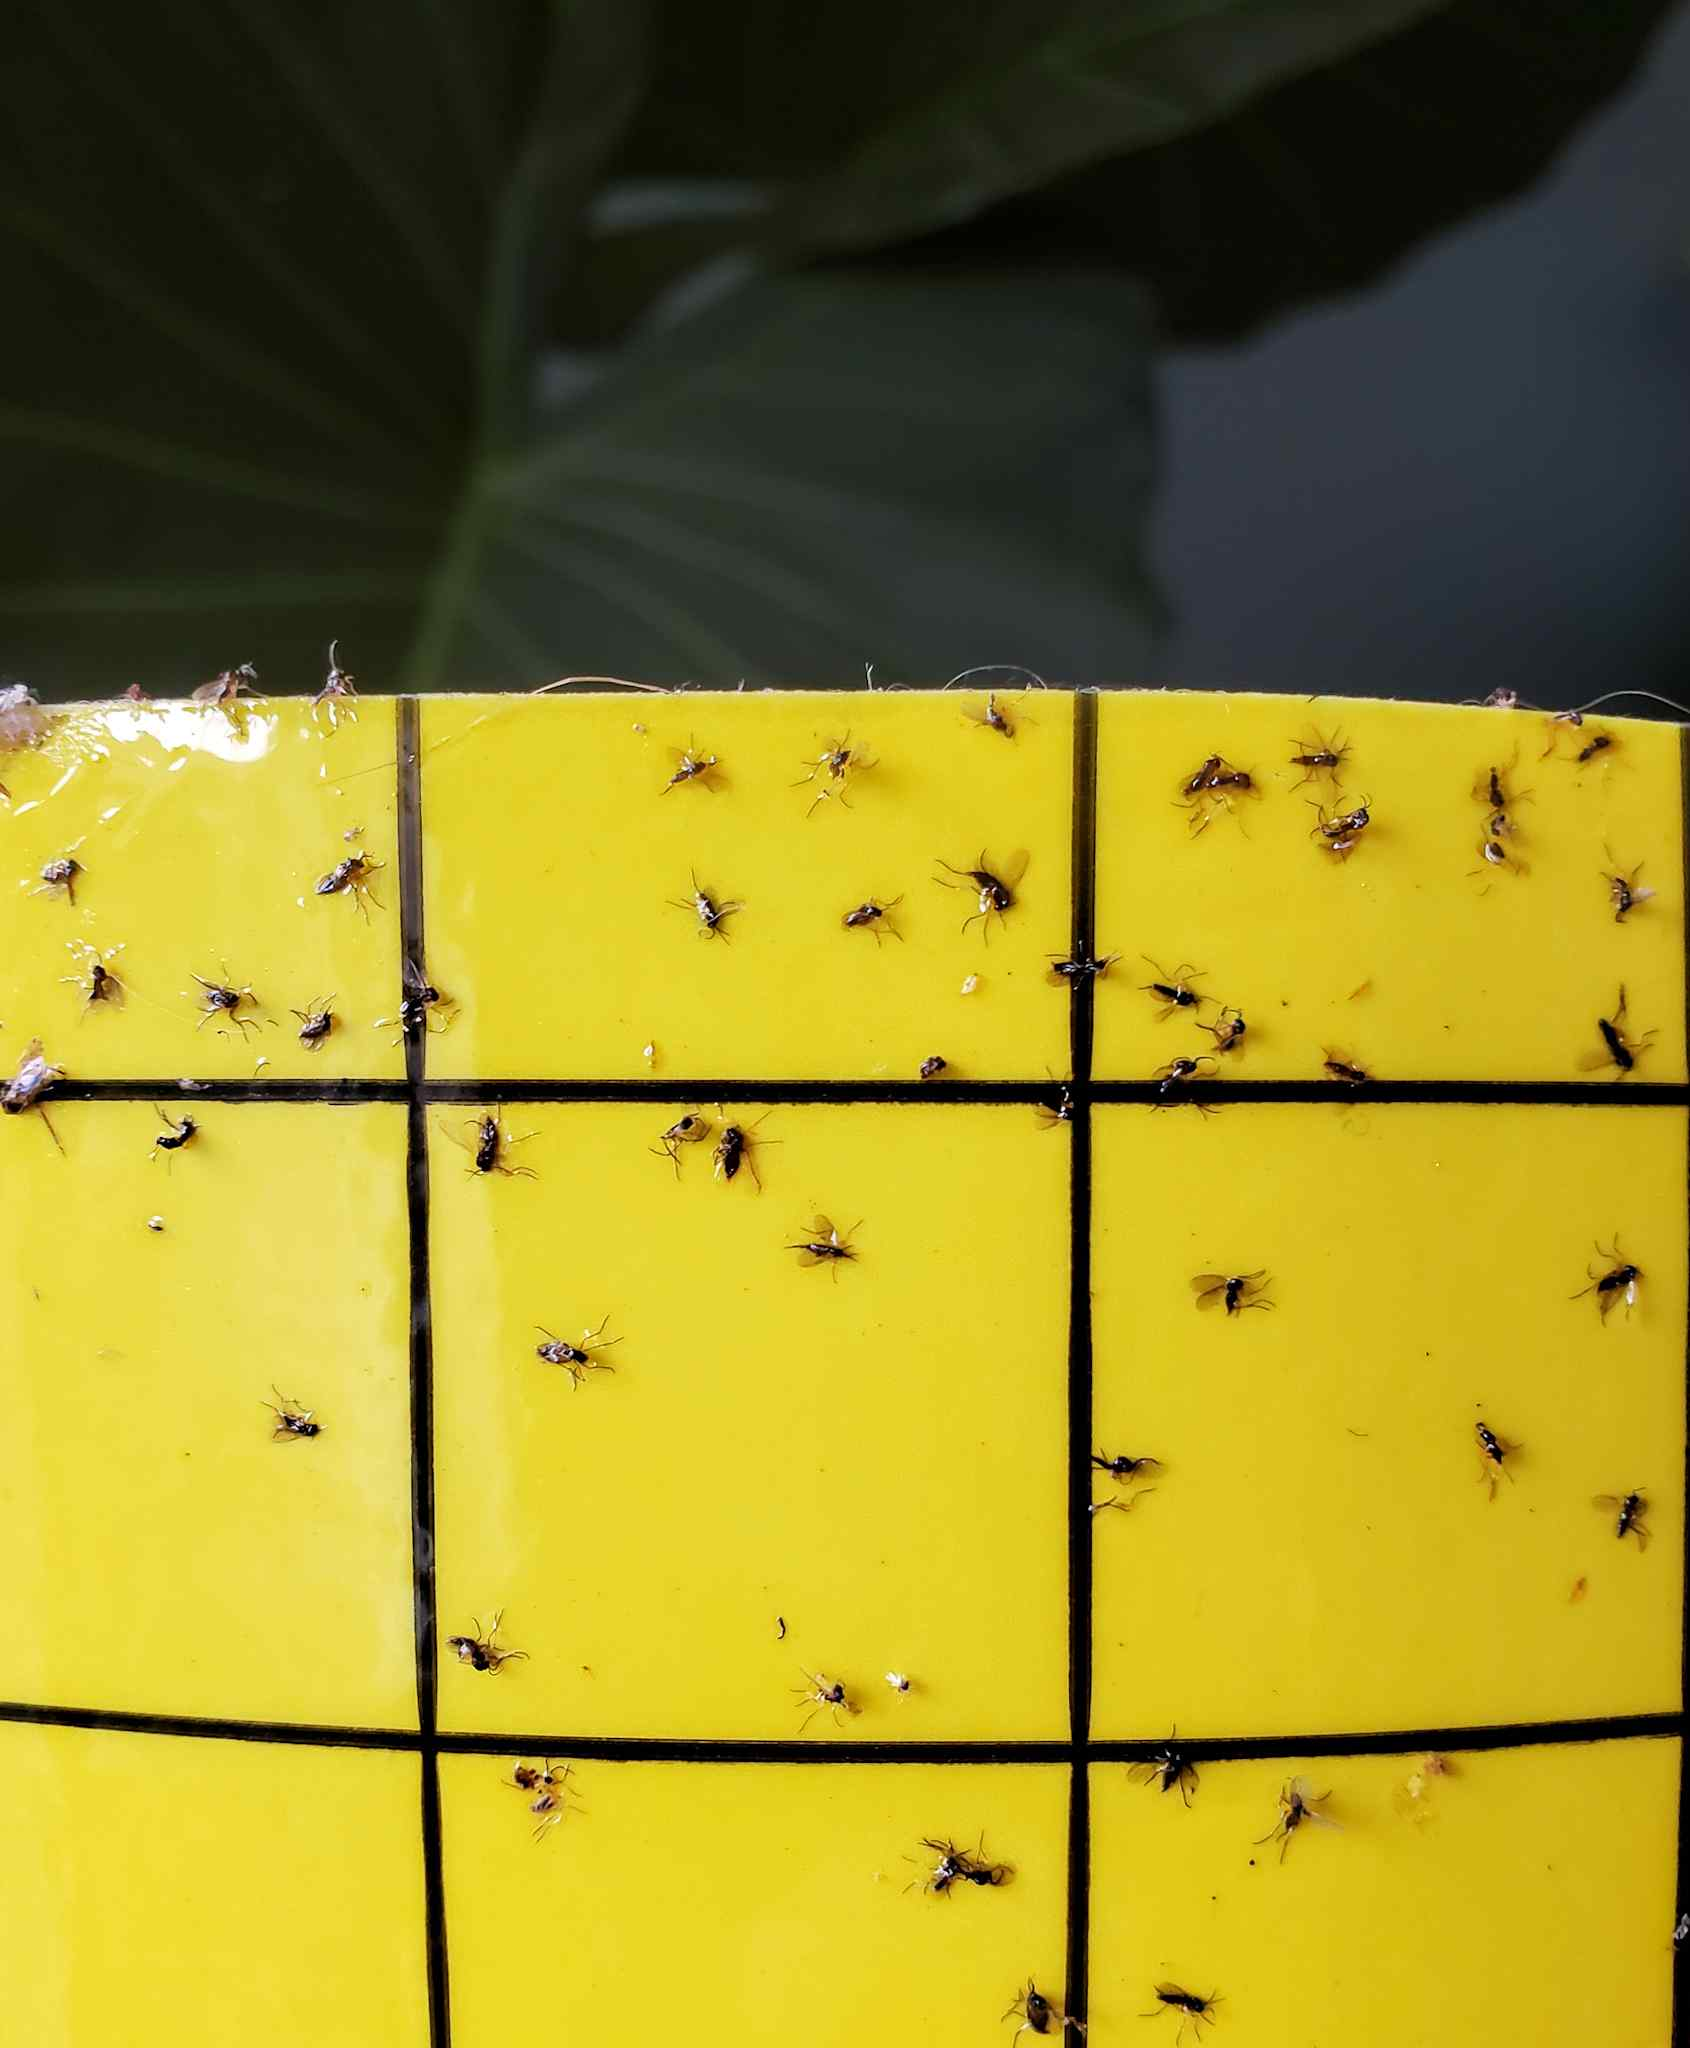 A close up image of a yellow sticky trap for flying insects. There are many small fungus gnats stuck to the trap, they are drawn to the color and easily become stuck on the trap due to how sticky it is.